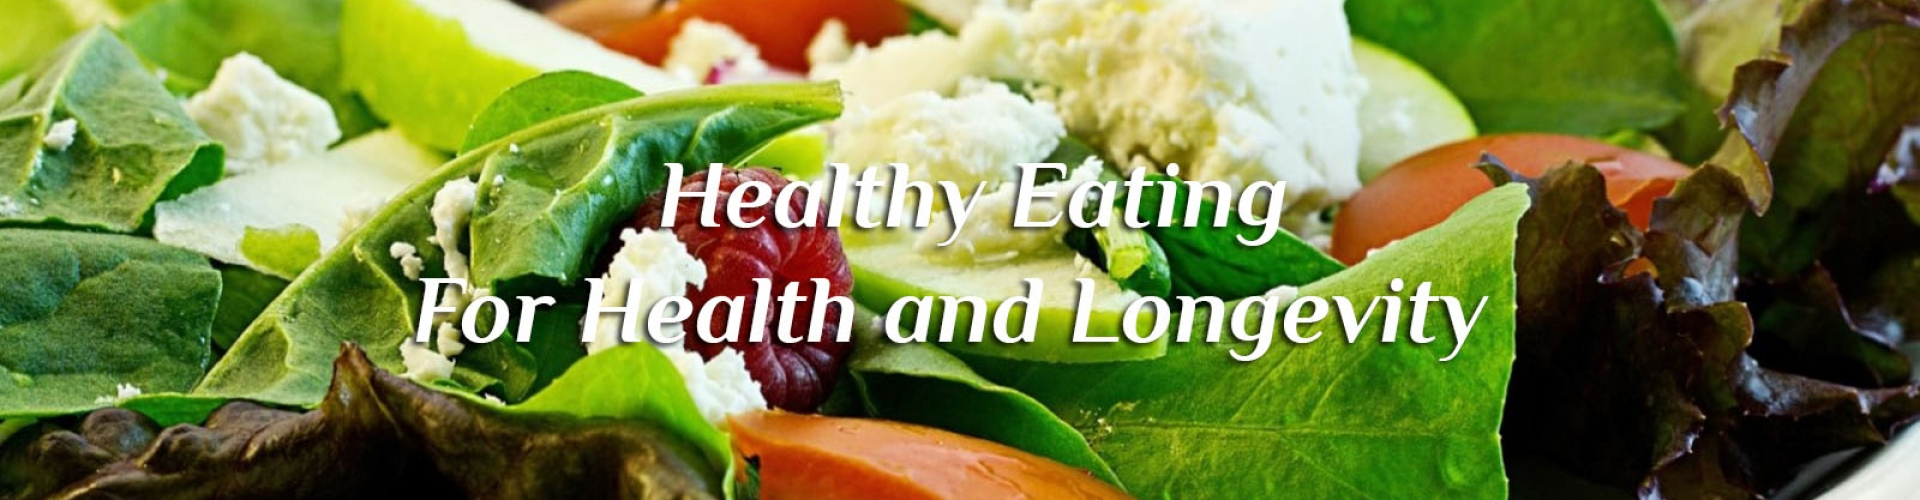 diets-for-health